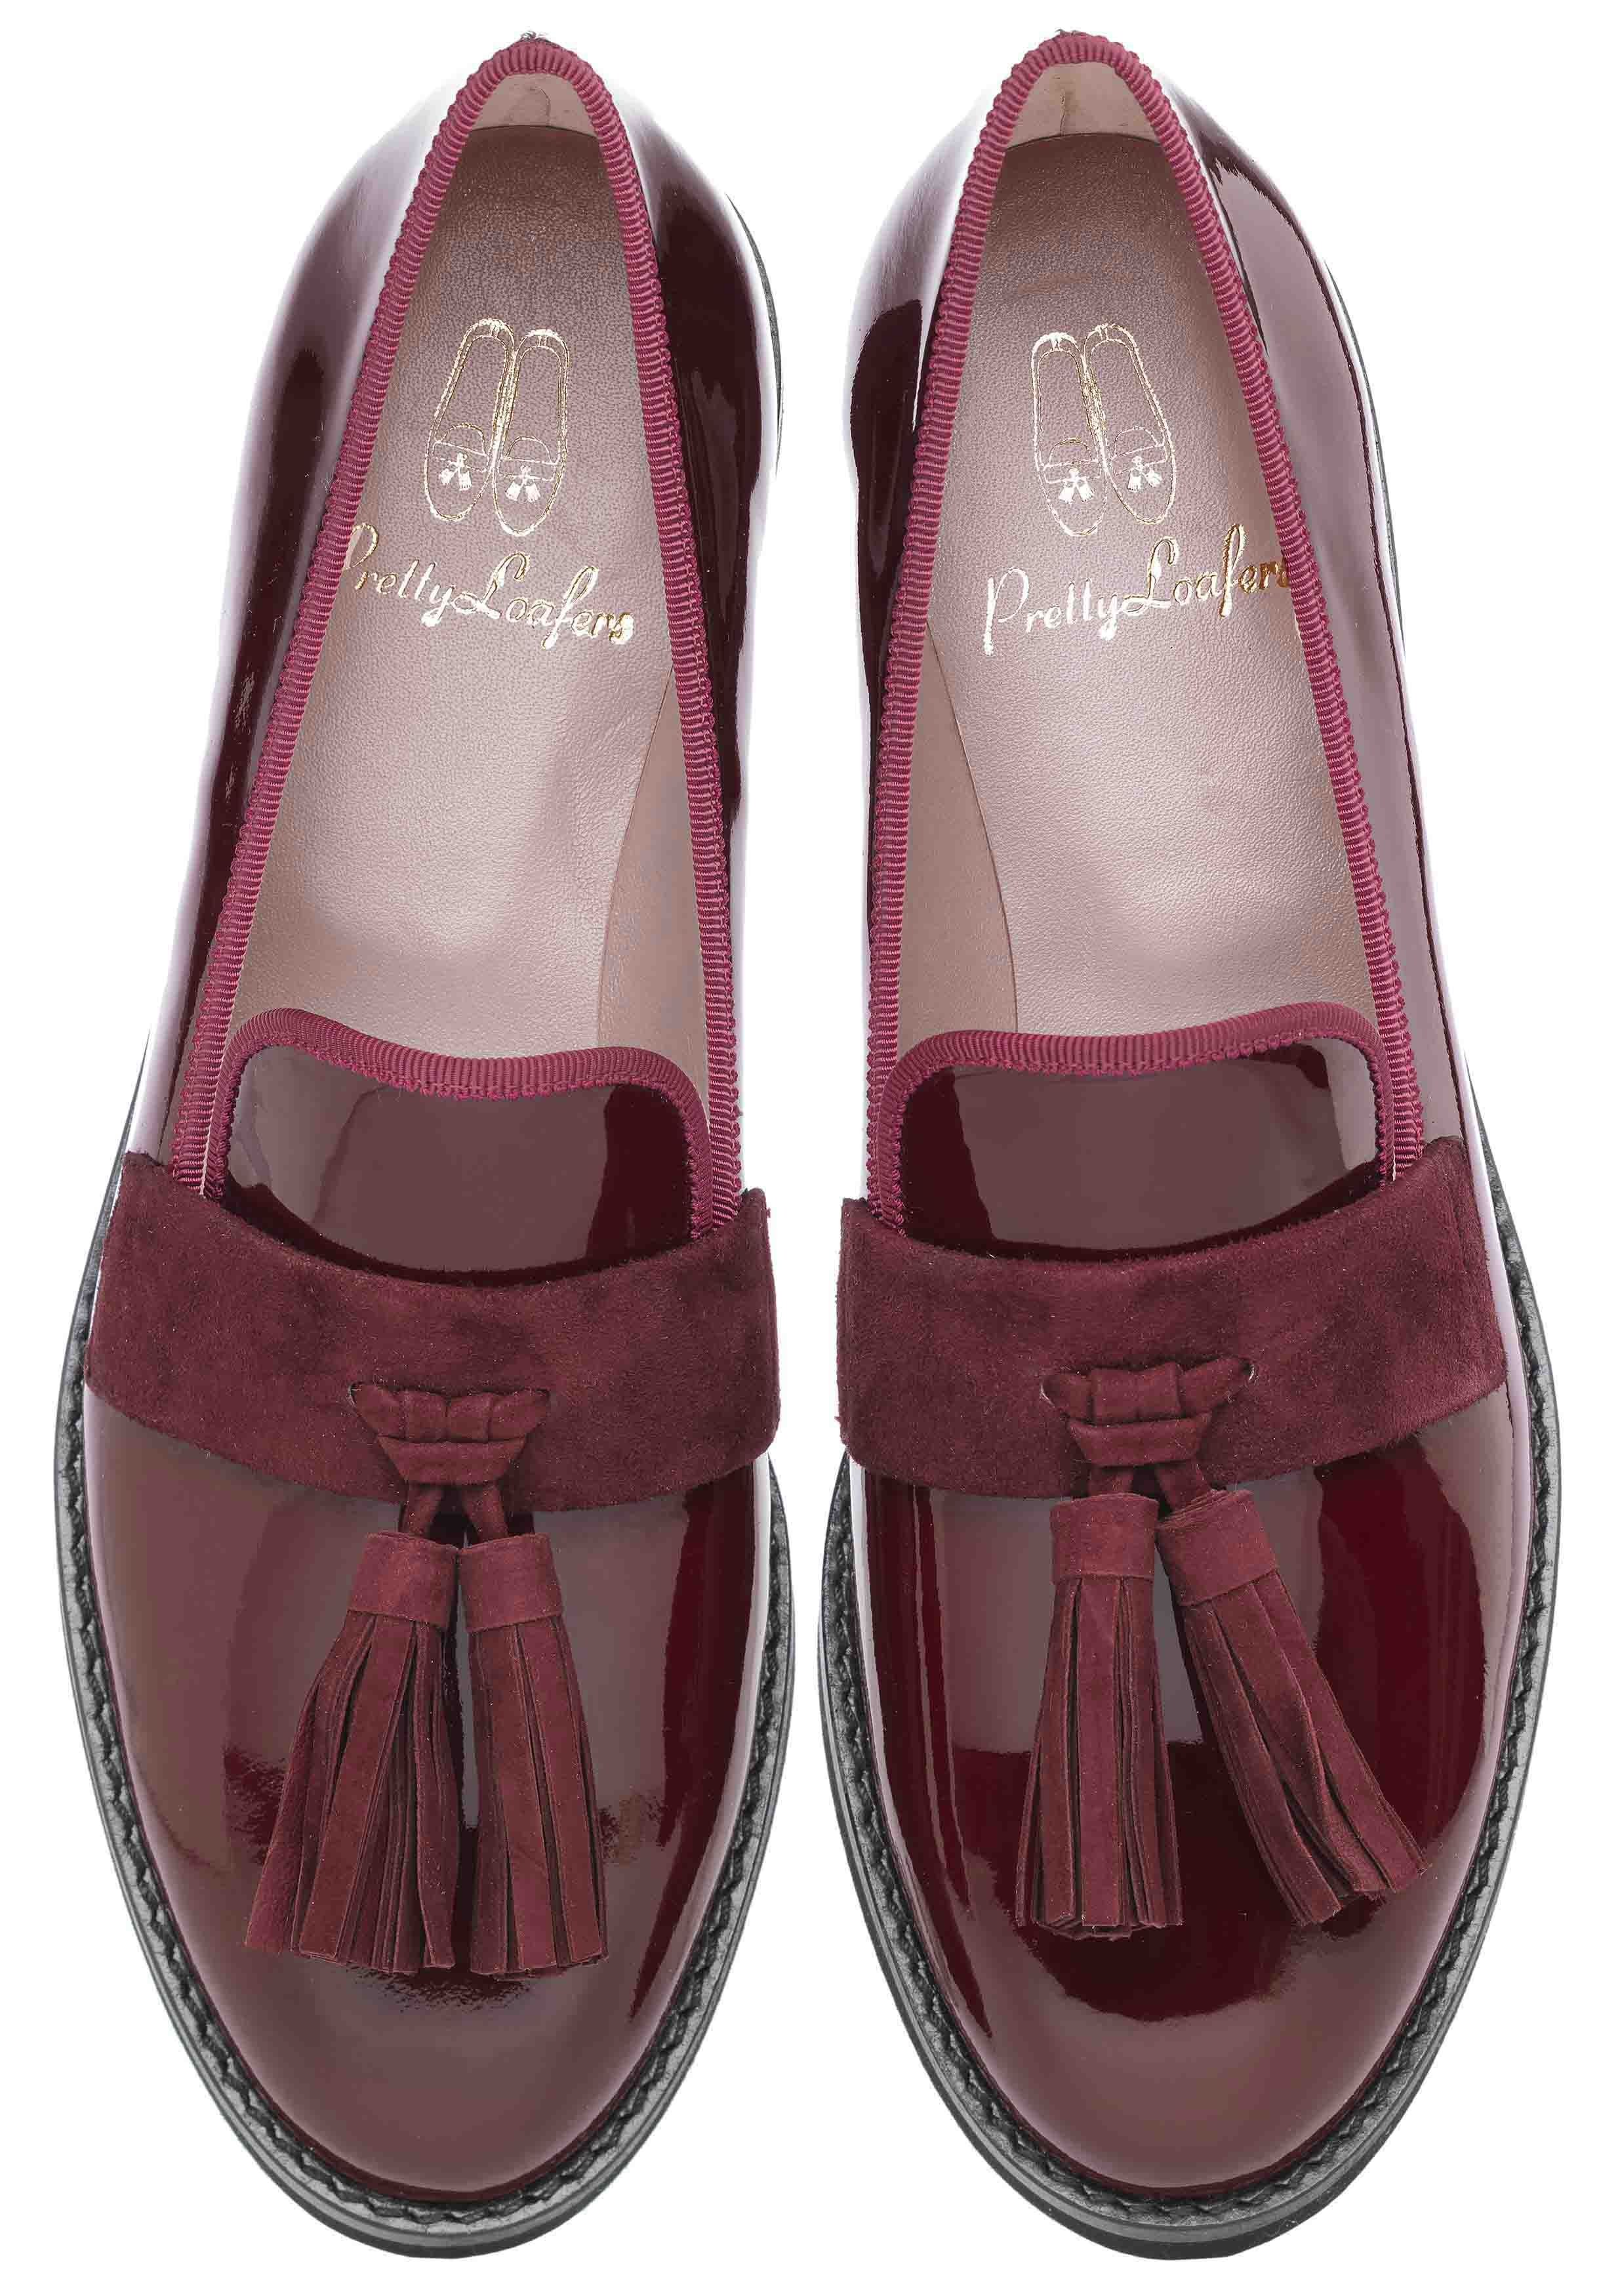 8753c1d9d Pretty Loafers designed by LEAH WELLER. Pretty Loafers   Pretty Ballerinas.  CHARLIZE. Charol rojo oscuro